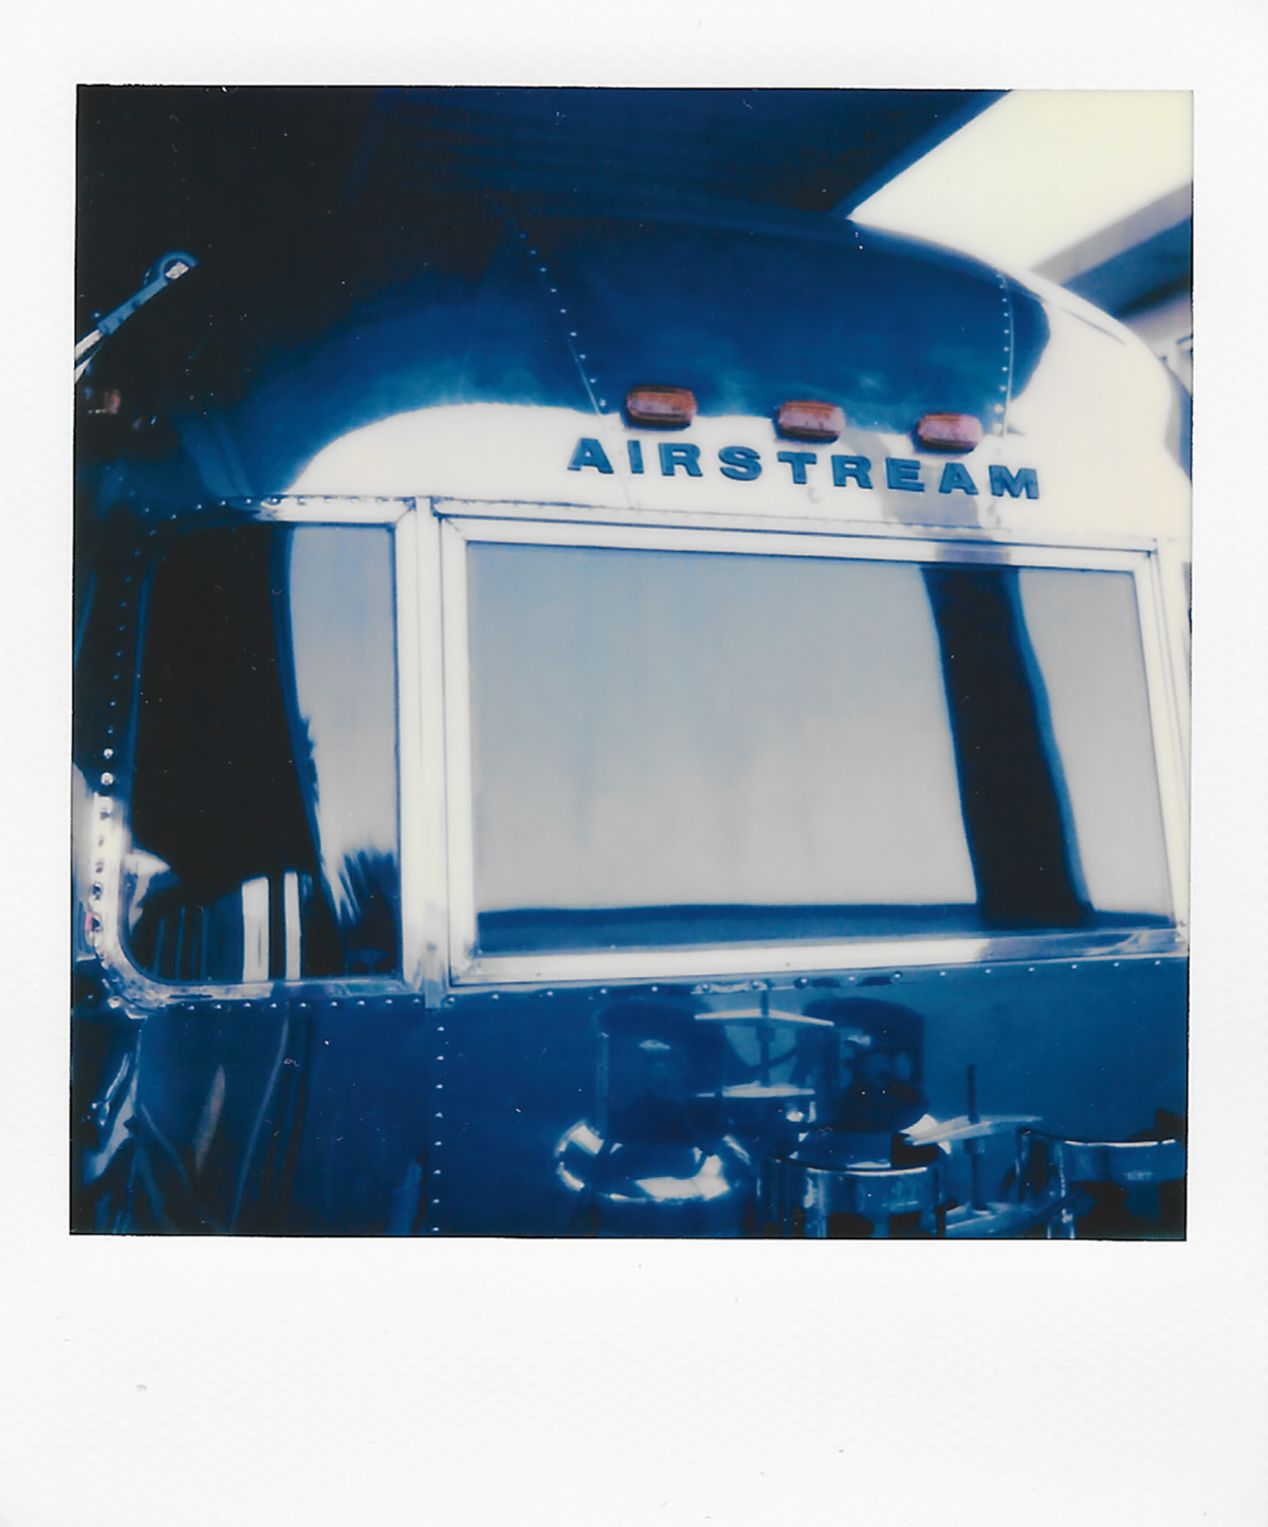 Vintage Airstream in Palm Springs, California. Taken with a Polaroid 600 Camera and Polaroid Originals 600 Film